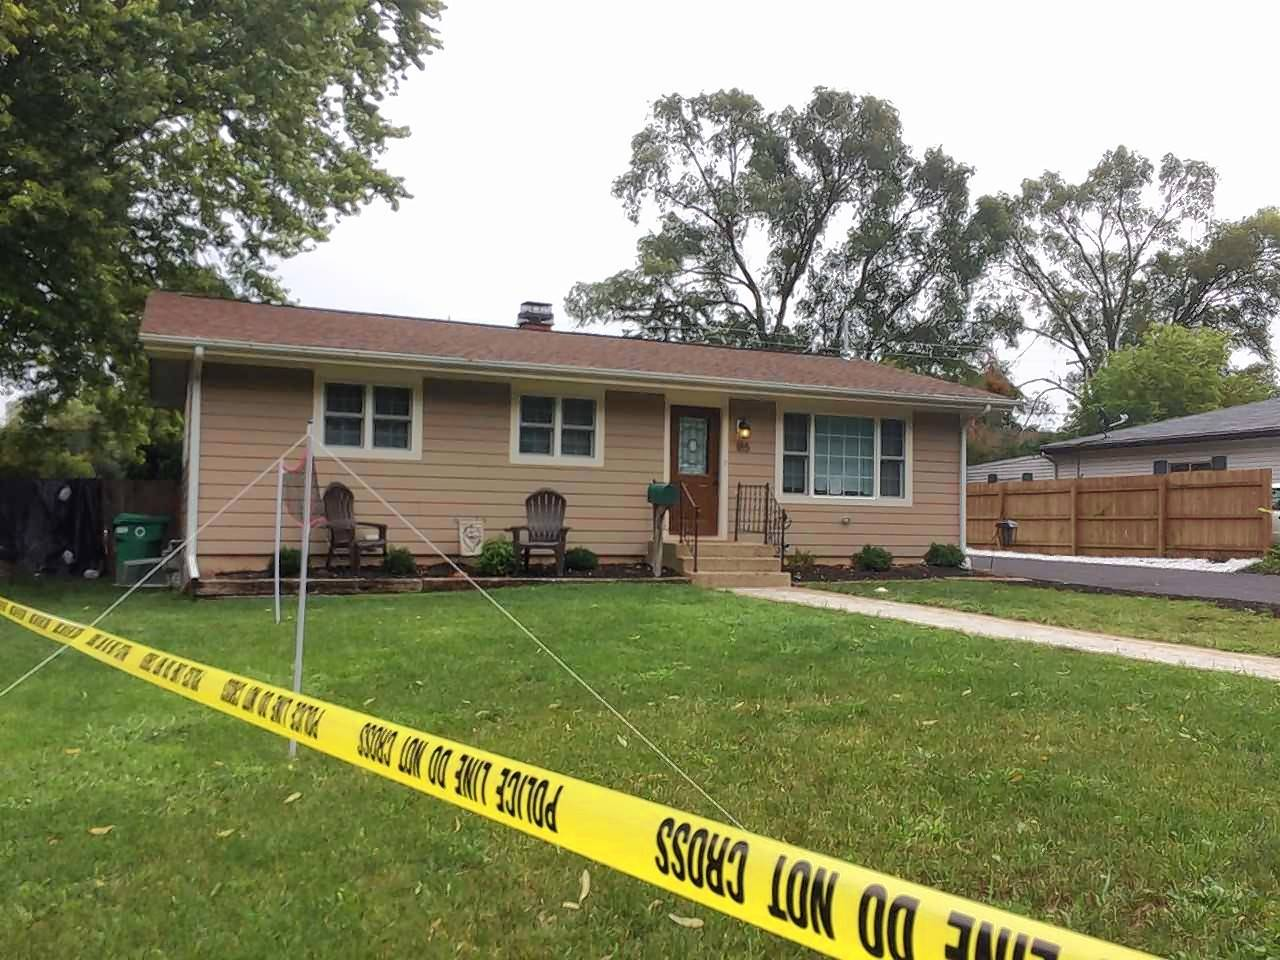 A 31-year-old woman and a 15-year-old girl were shot and killed Thursday in this home off Marian Parkway in Crystal Lake.